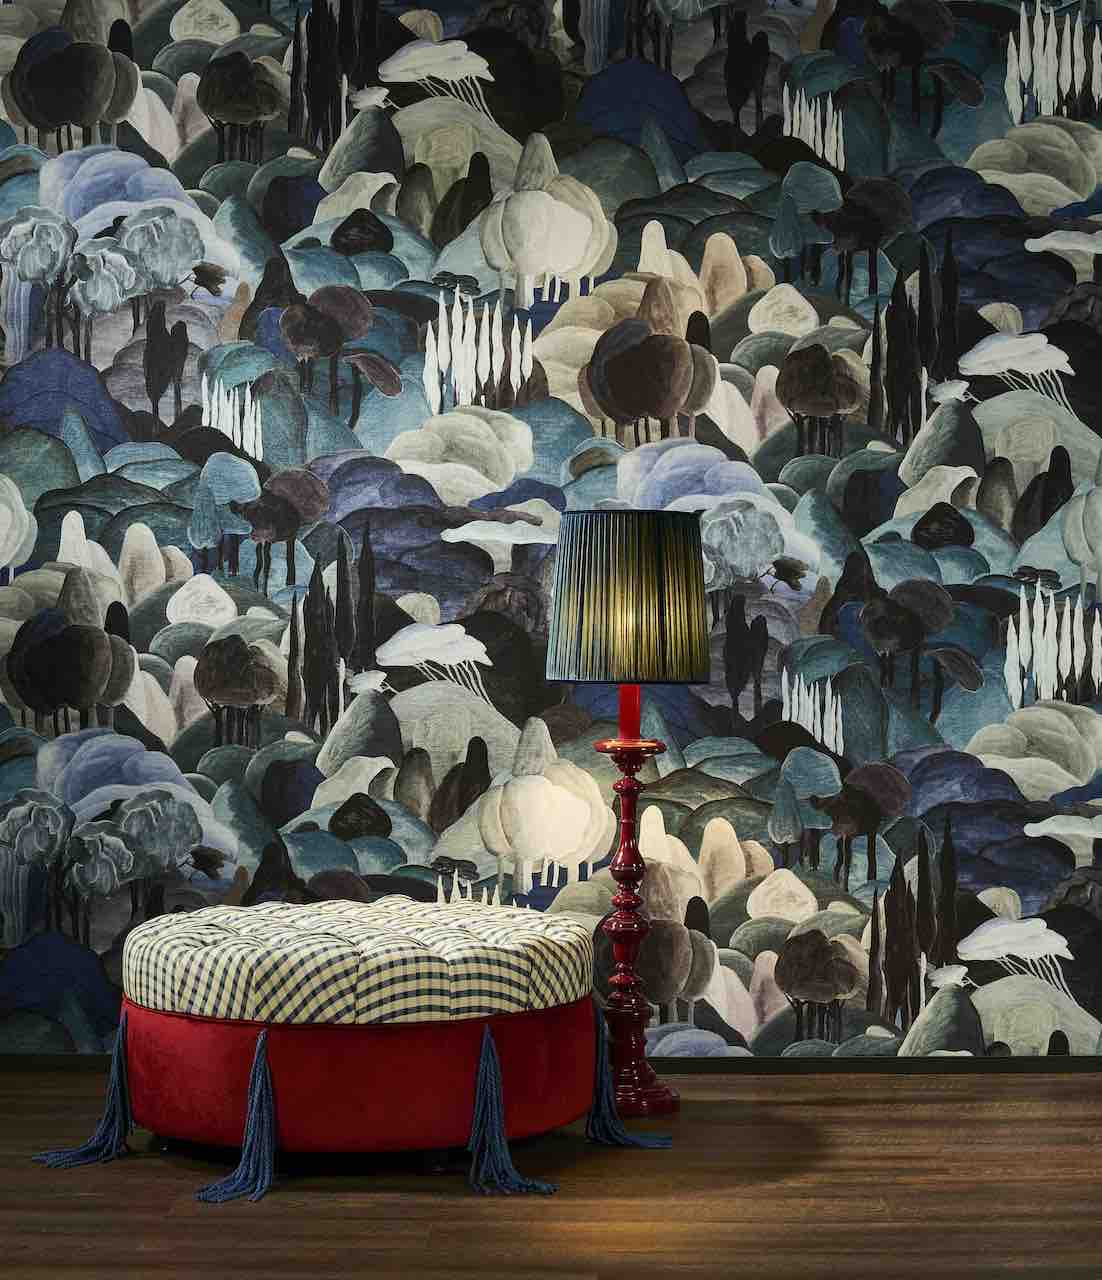 DecorsPanoramiques_All'ombradeicip ressi_97502_Roomshot_Print_HR